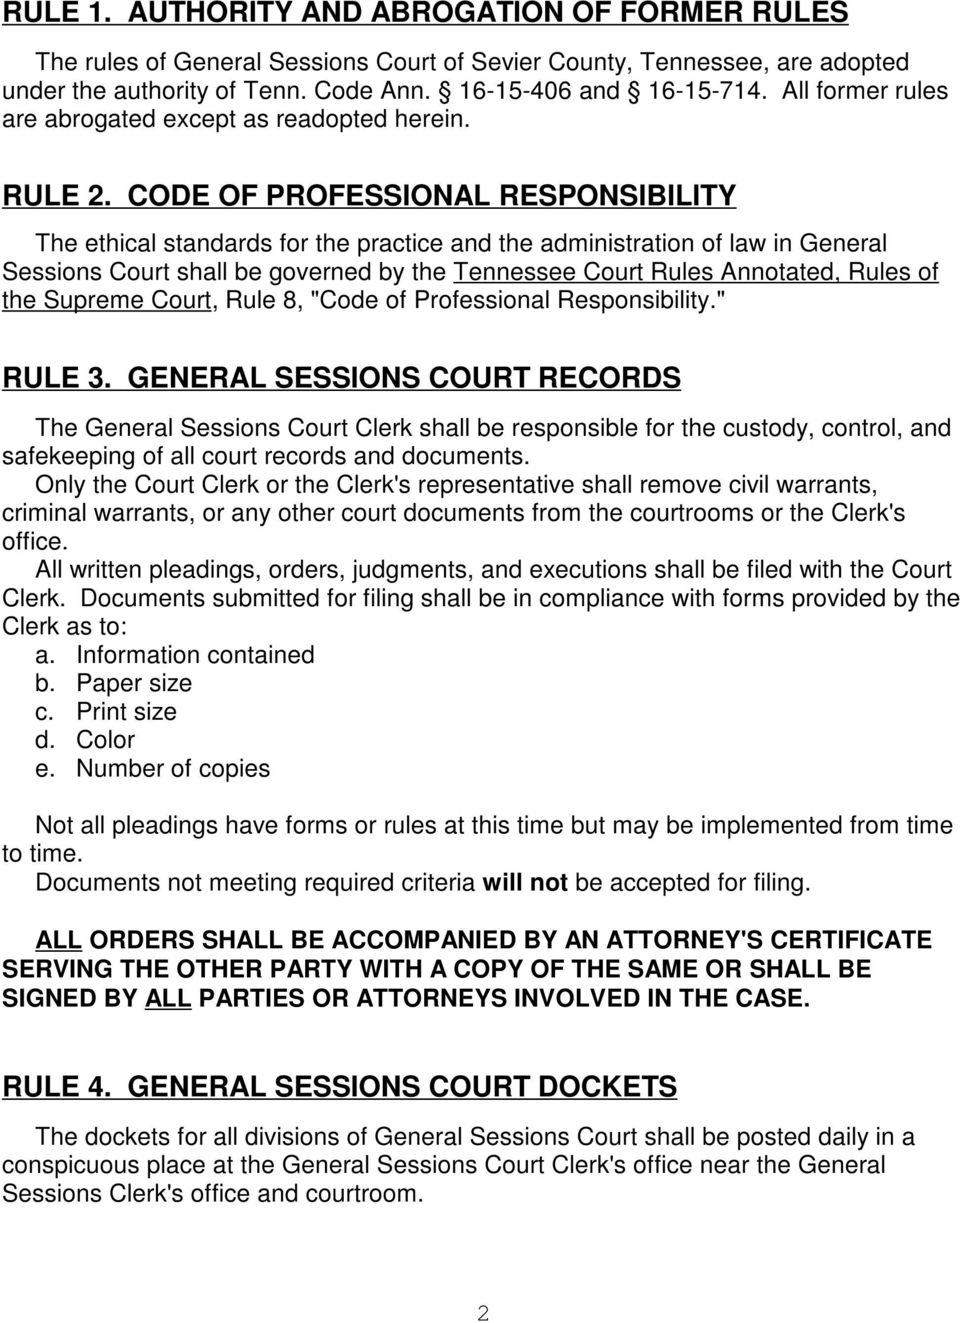 RULES OF COURT FOR GENERAL SESSIONS COURT FOR SEVIER COUNTY